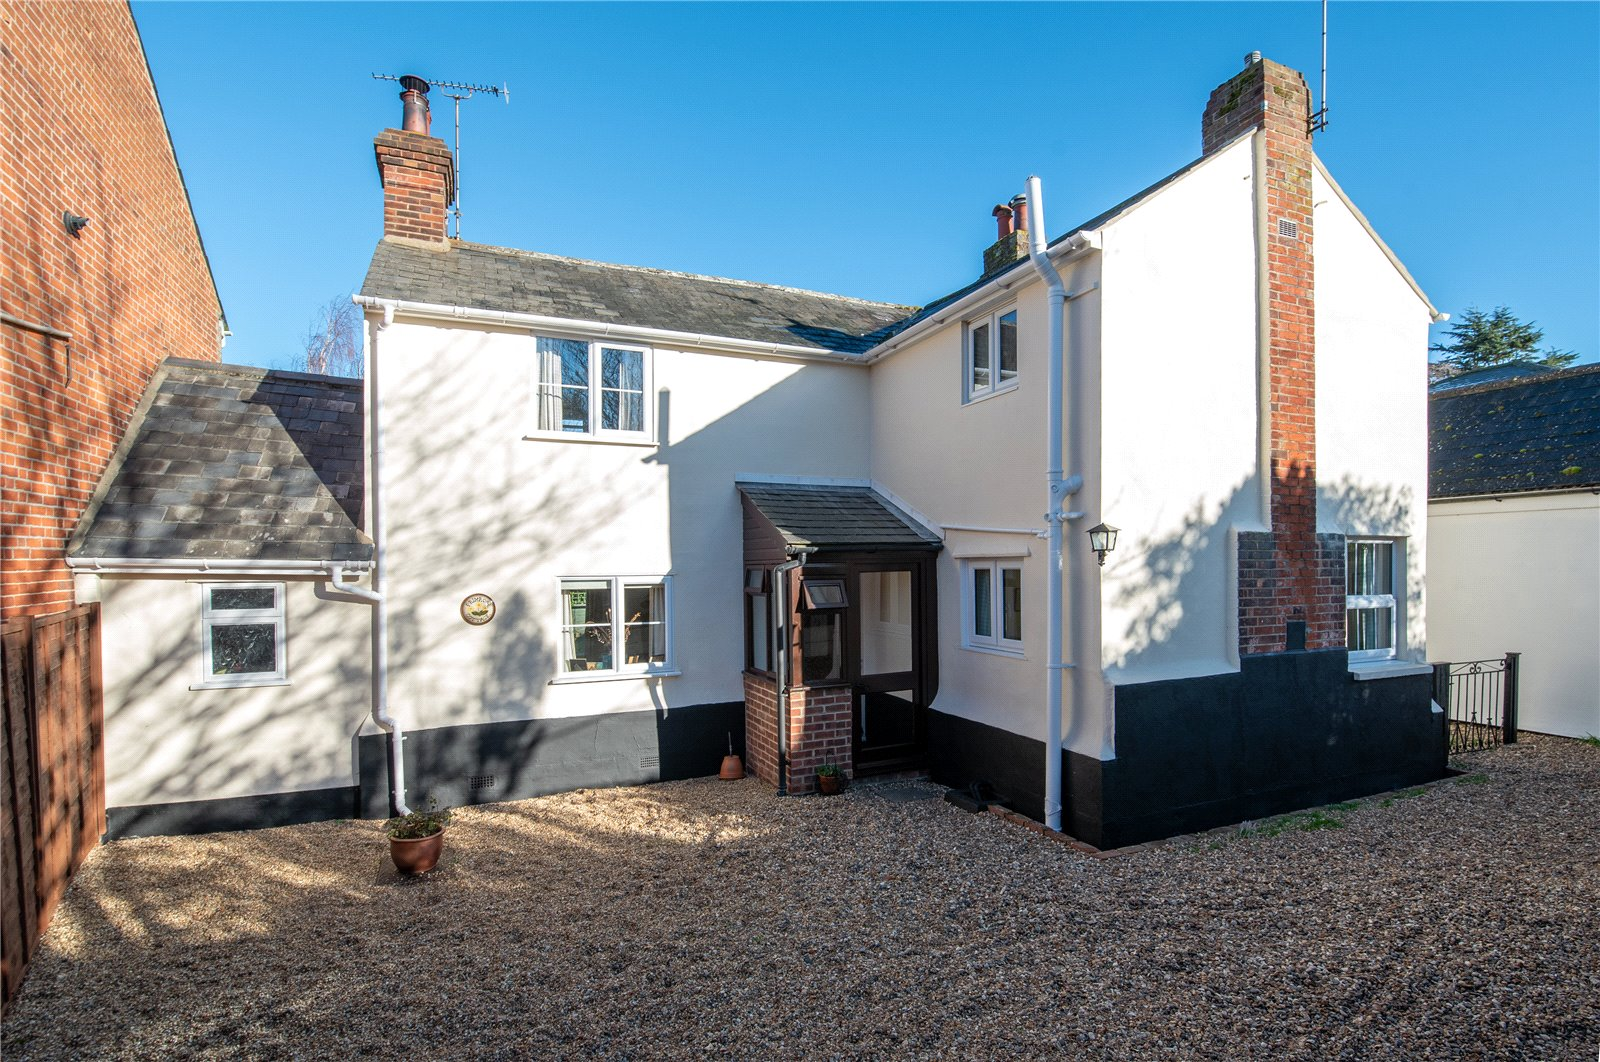 3 bed link detached house for sale in The Chase, New Road, Manningtree - Property Image 1